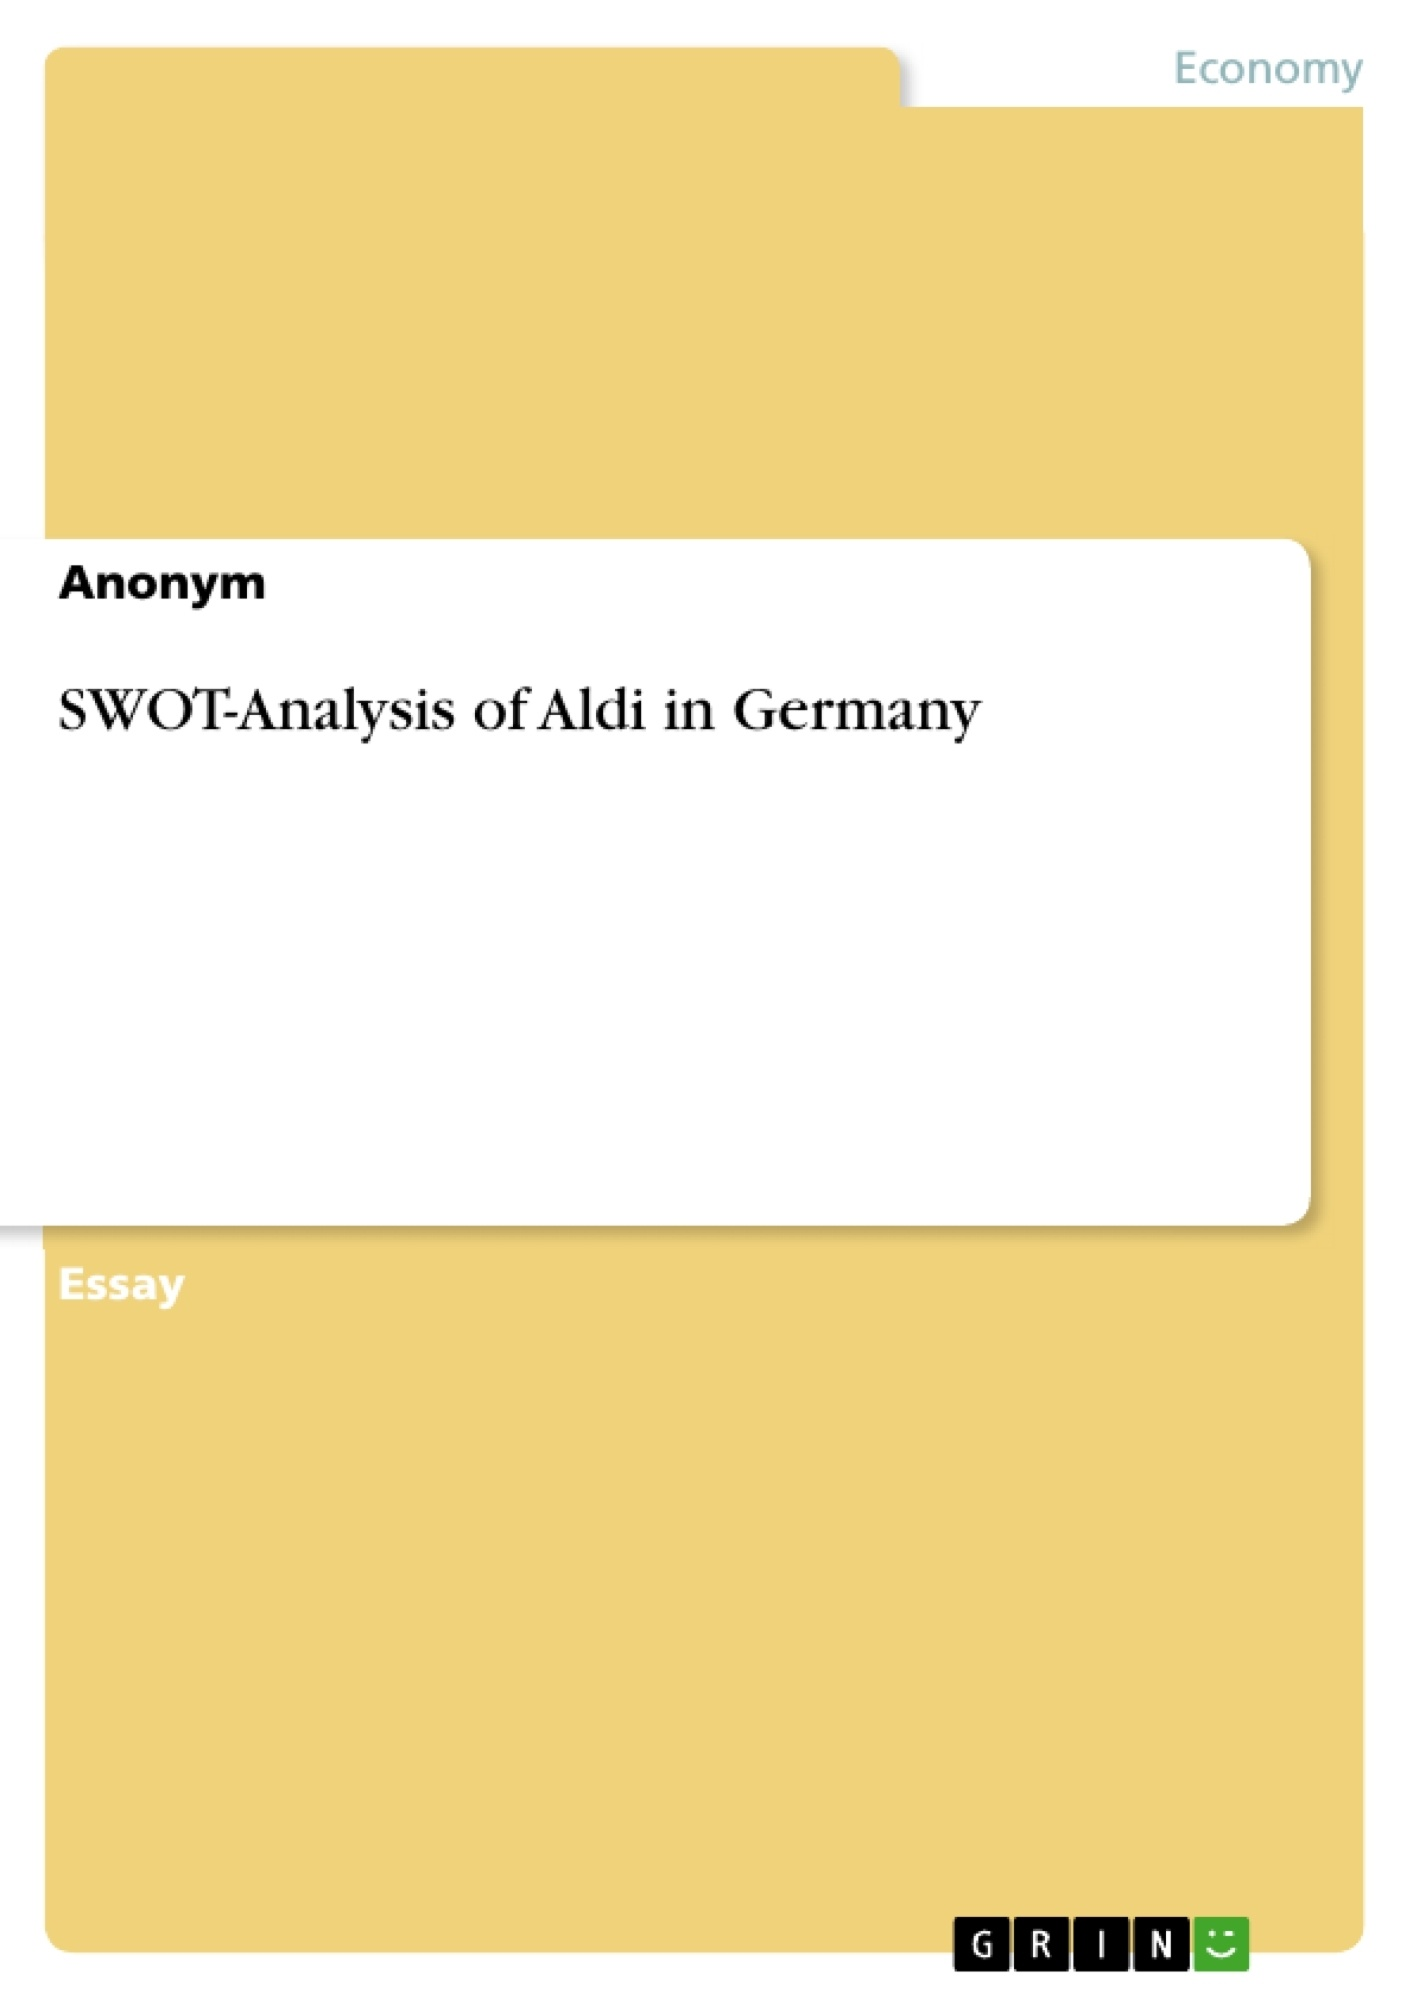 Title: SWOT-Analysis of Aldi in Germany